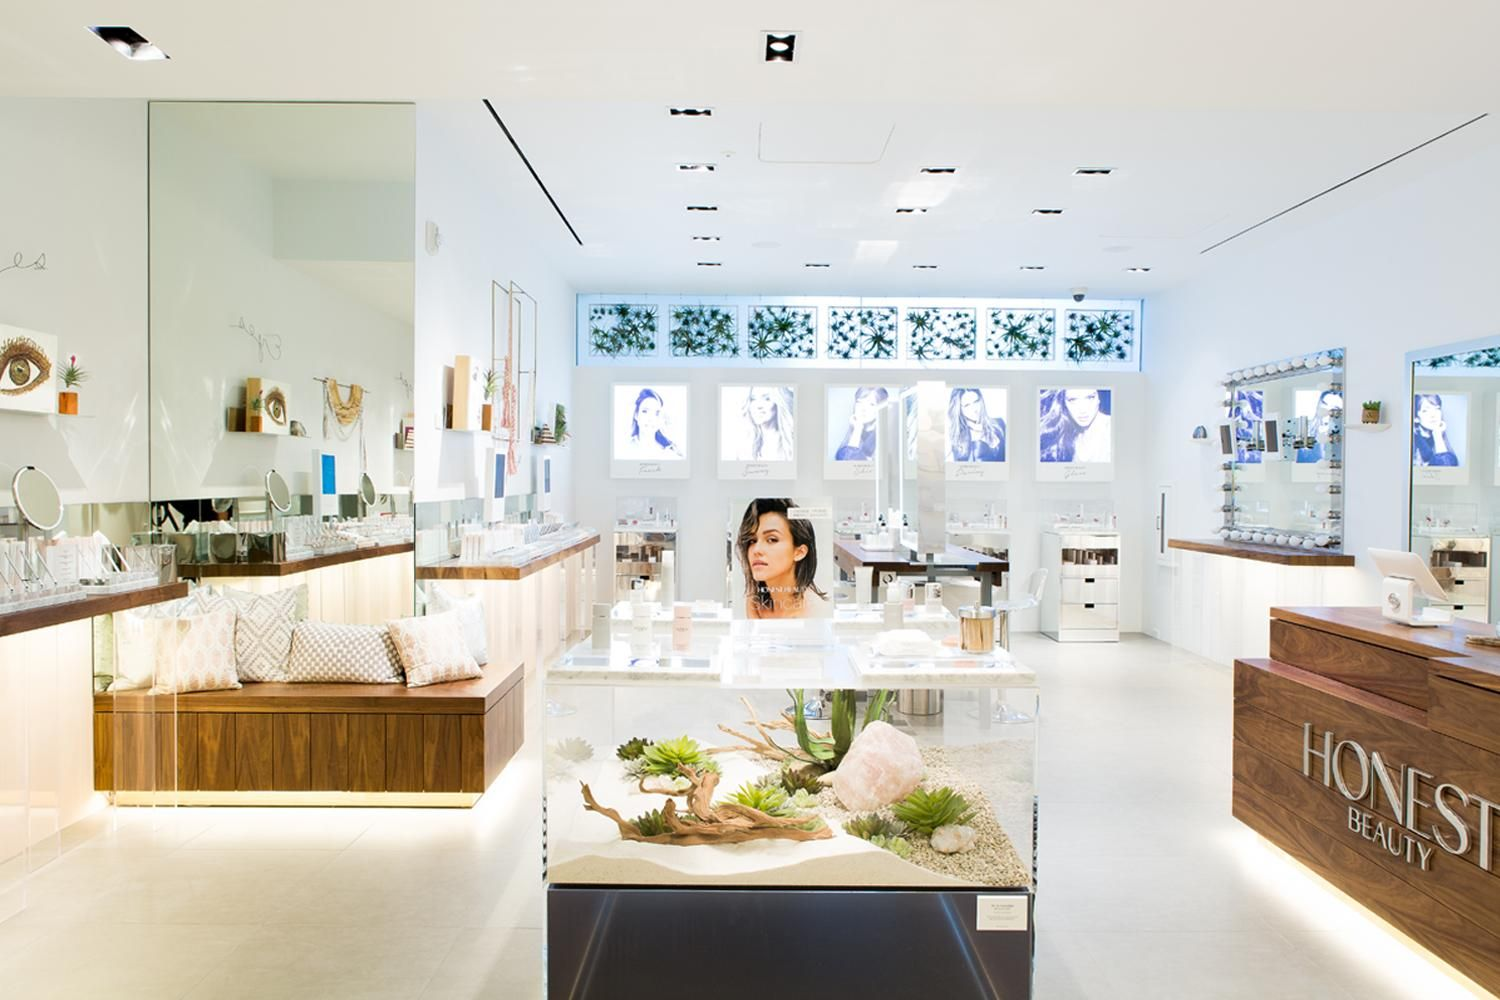 Last week we opened the doors to the first Honest Beauty retail